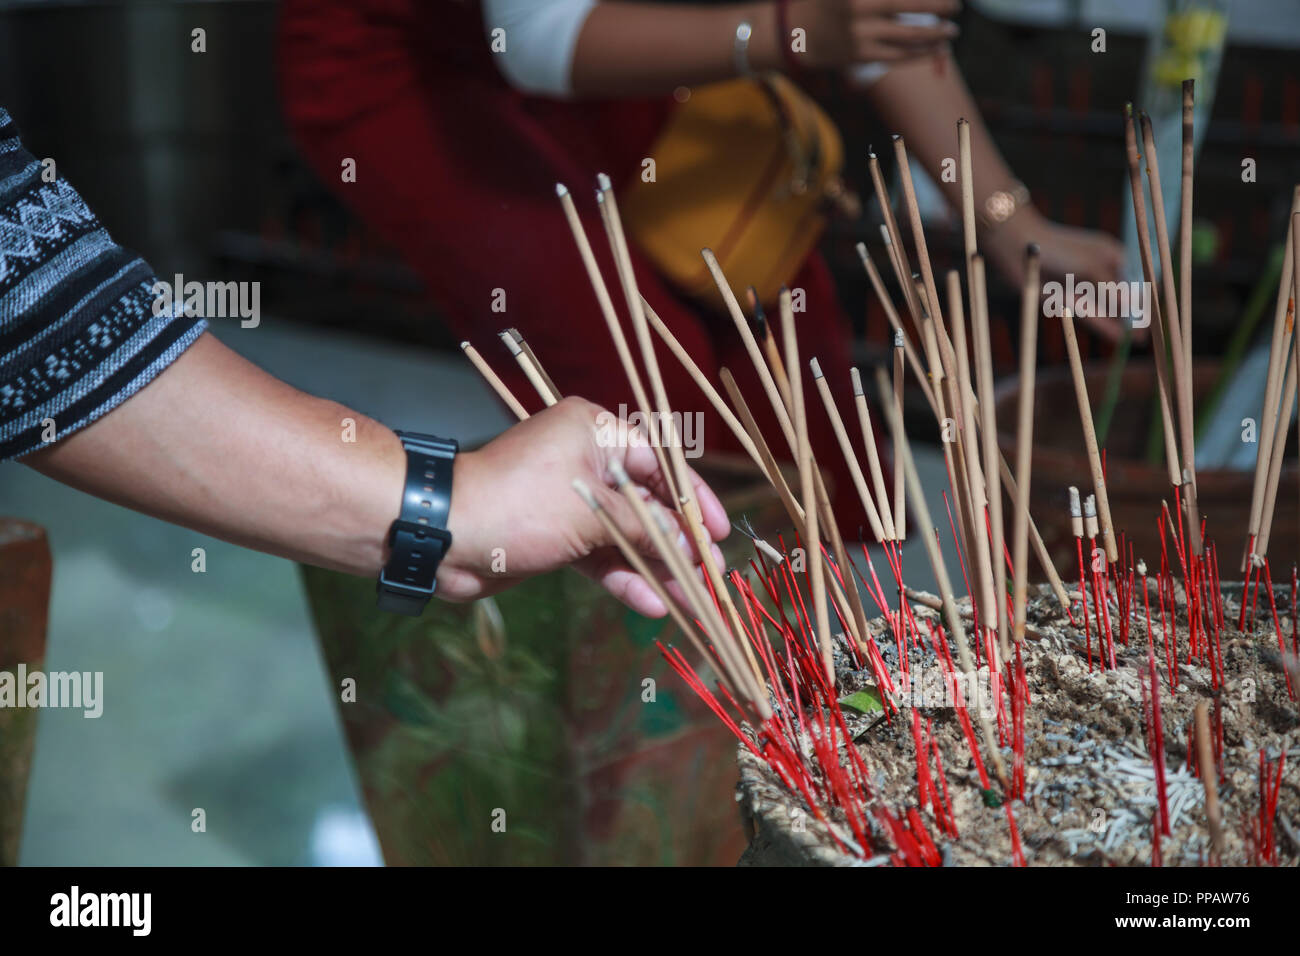 man hand sticks burning incense in incense pot in Buddhist Temple. Buddhism, Asian traditional religious ceremony, Rituals, Making a wish, Meditation, - Stock Image